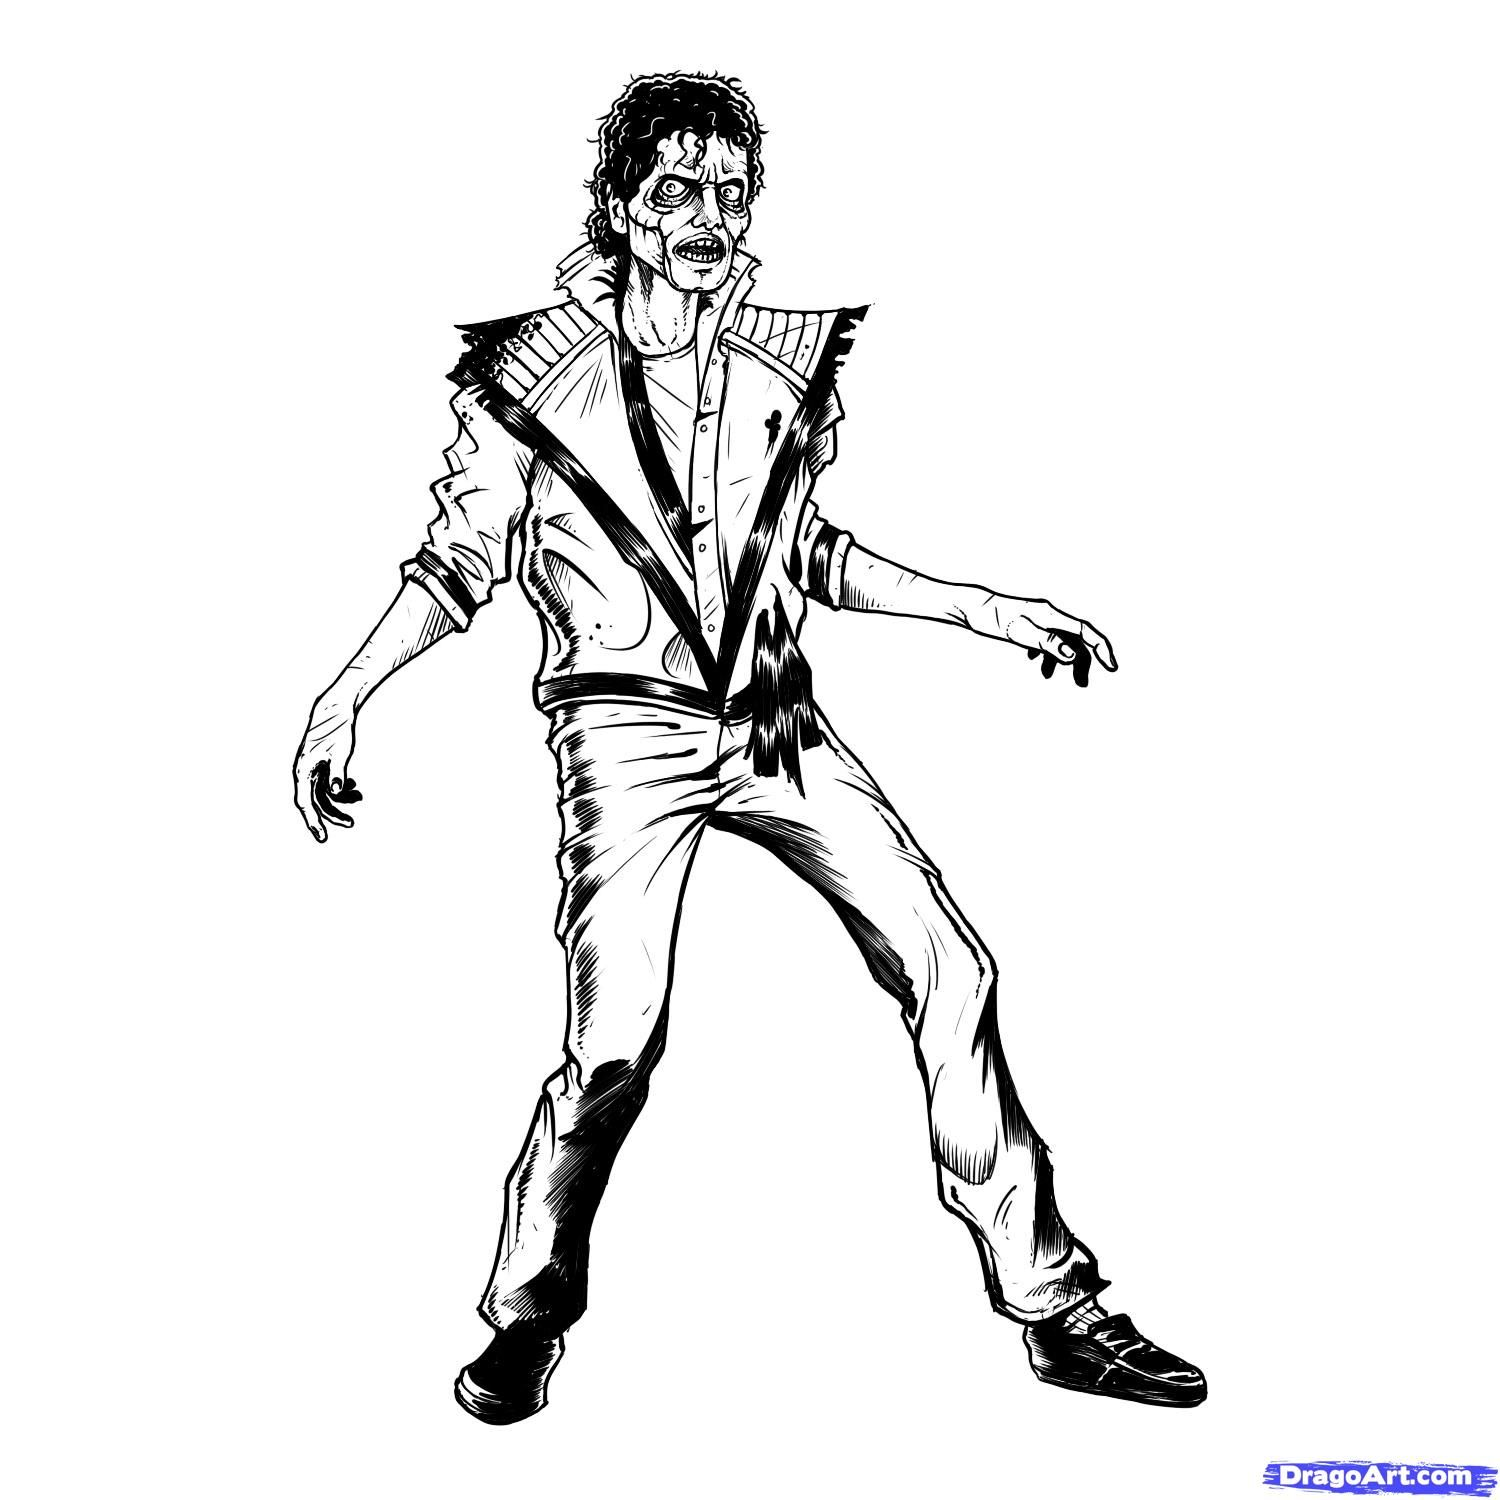 How To Draw Michael Jackson Thriller Thriller Michael Jackson Step By Step Sta Photos Of Michael Jackson Michael Jackson Art Michael Jackson Smooth Criminal